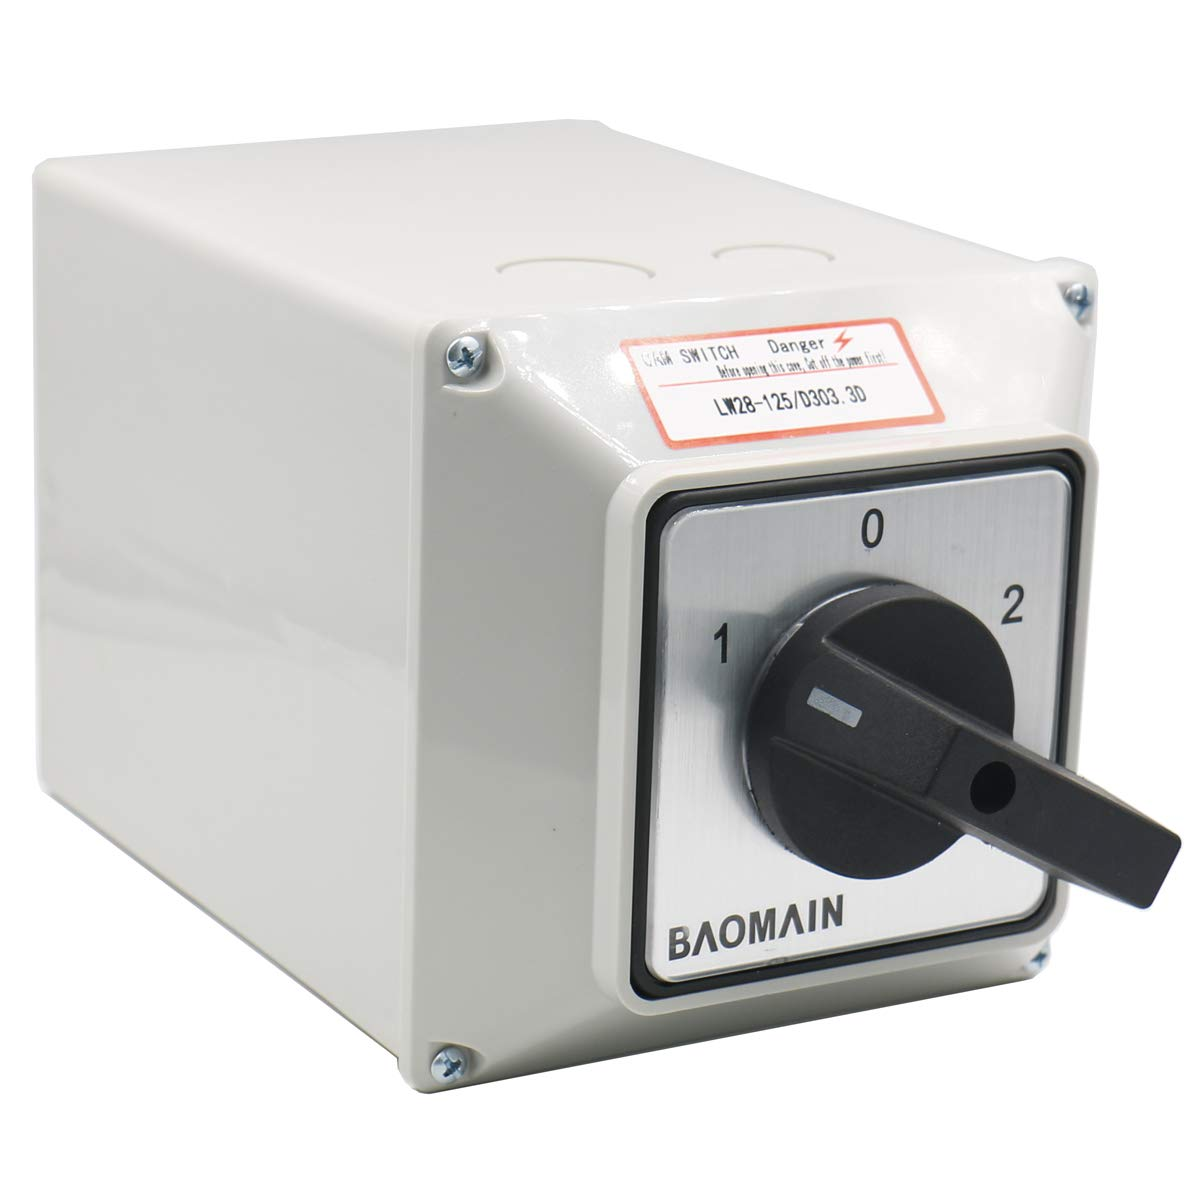 Baomain Universal Rotary Changeover Switch LW28-125/D303.3 with Master Switch Exterior Box LW28-125/4 660V 125A 3 Position 3 Phase by Baomain